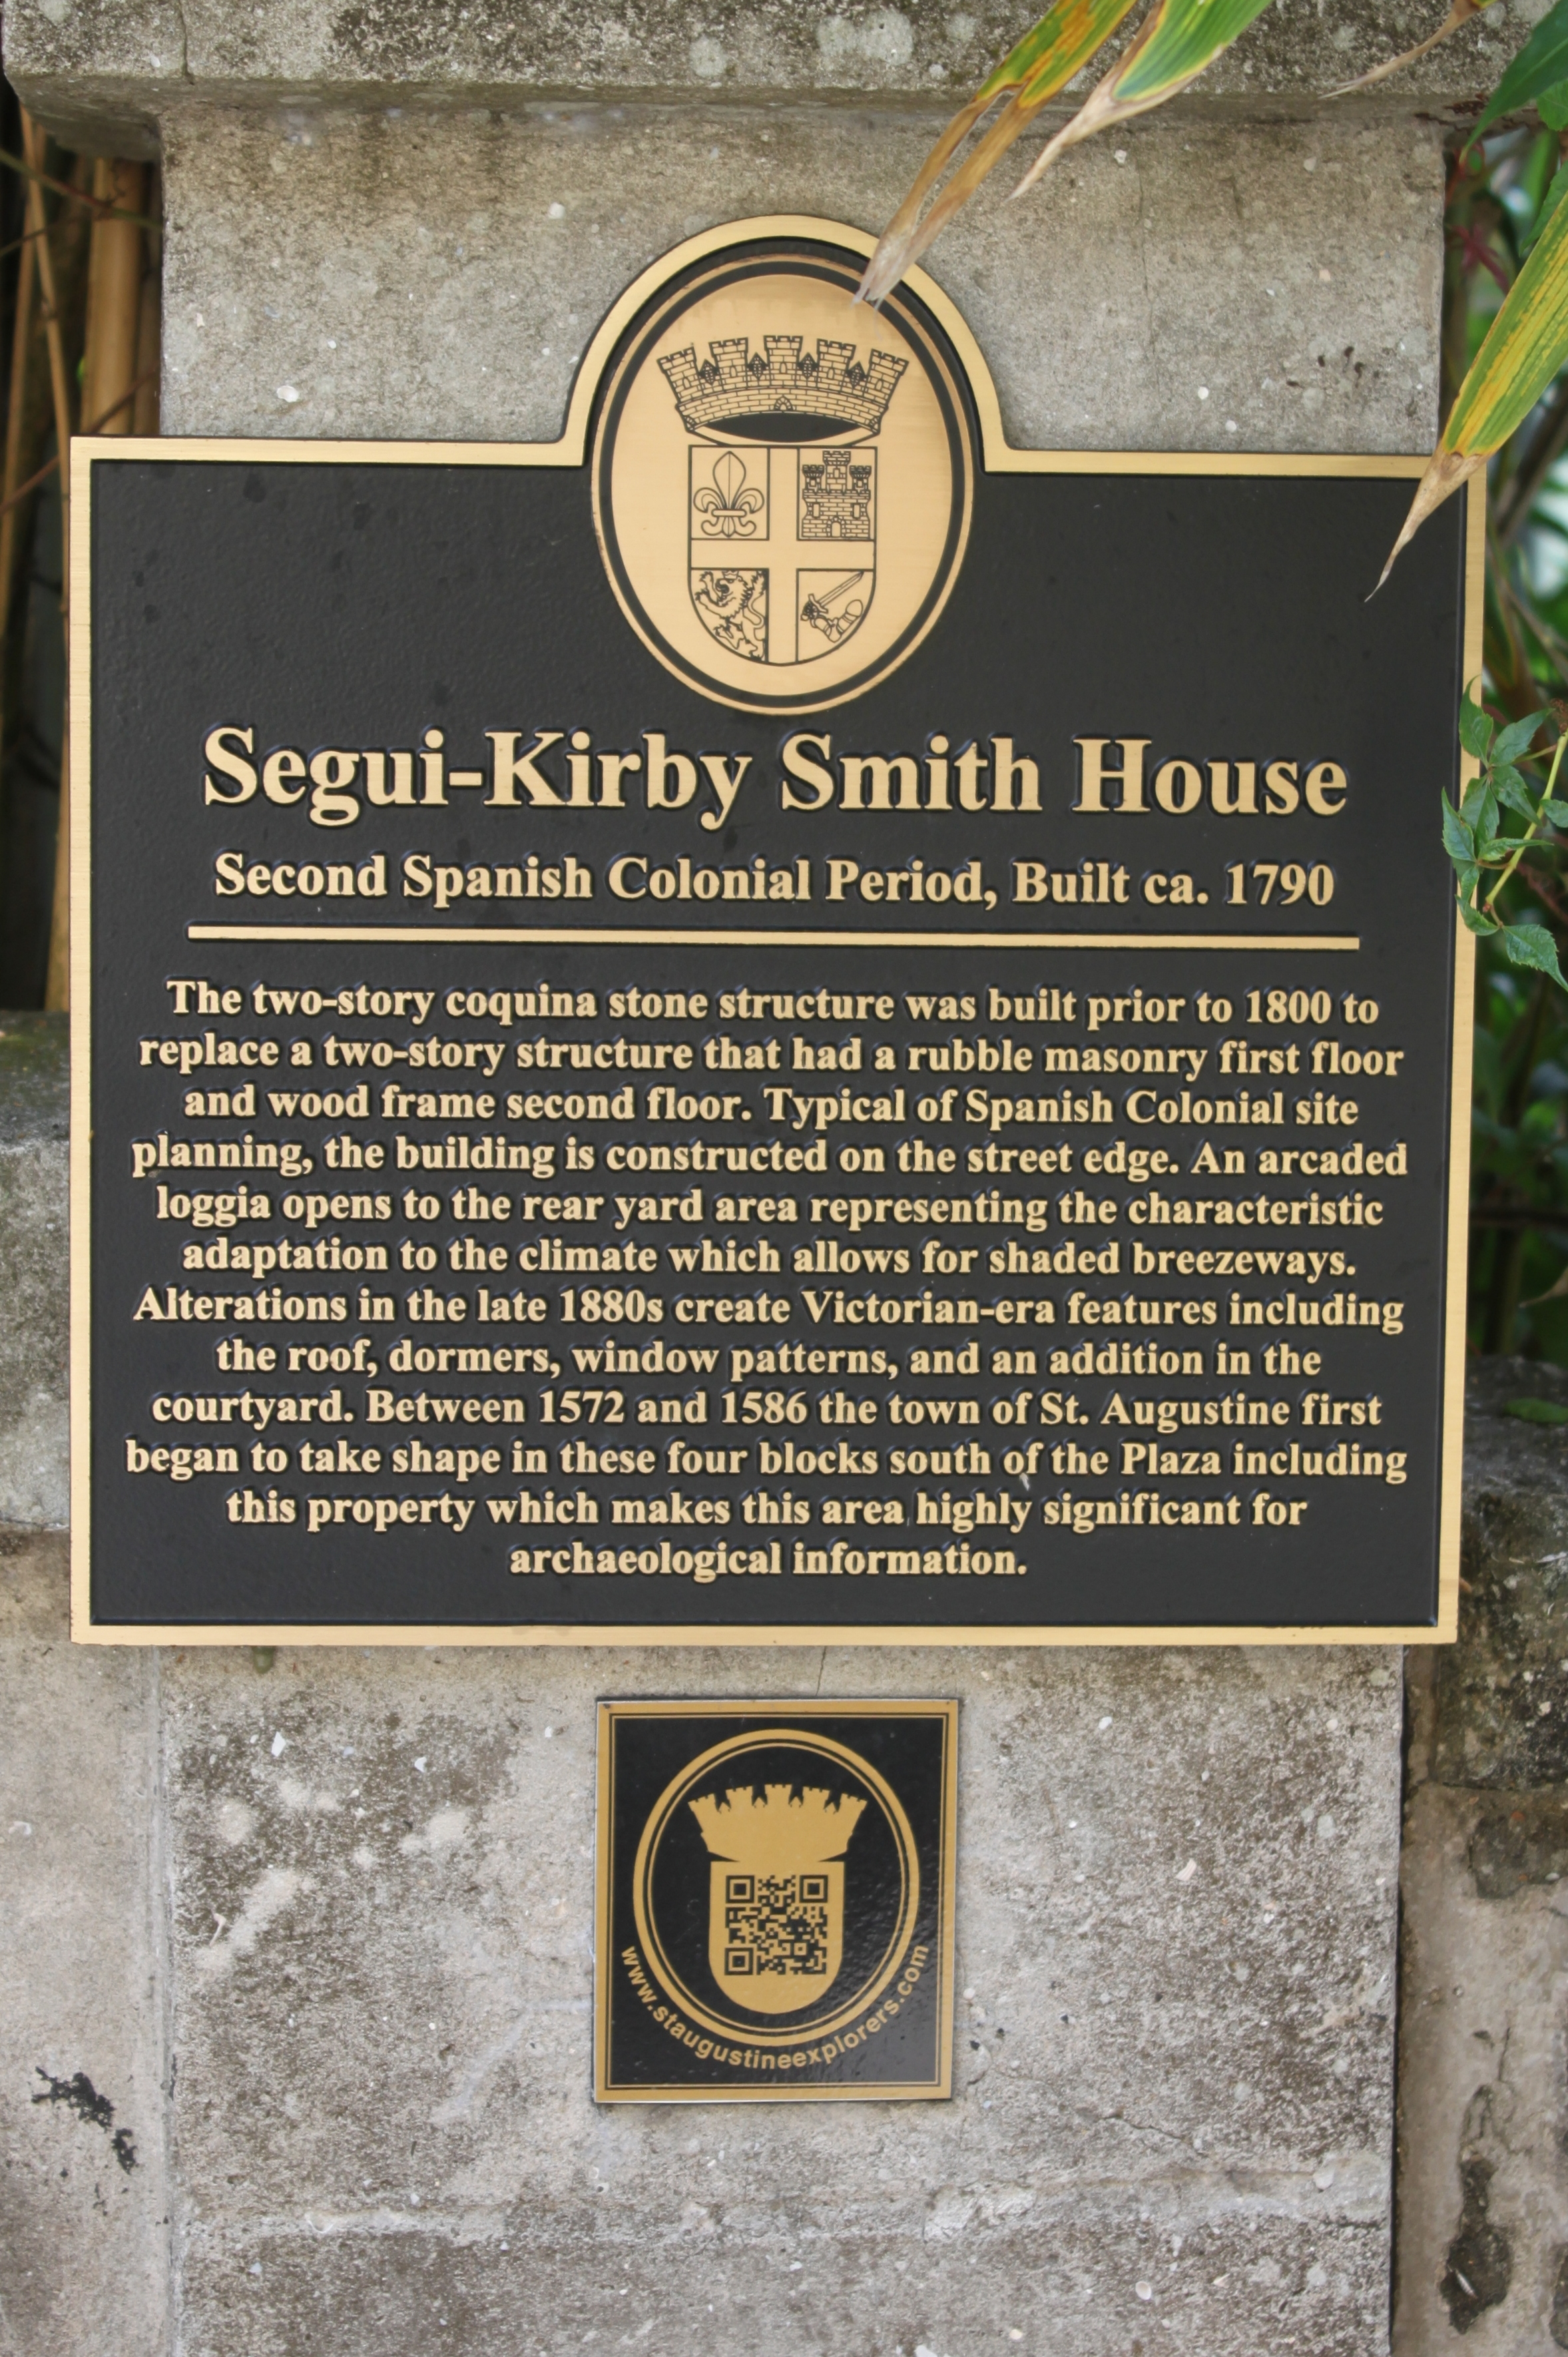 Segui-Kirby Smith House Marker